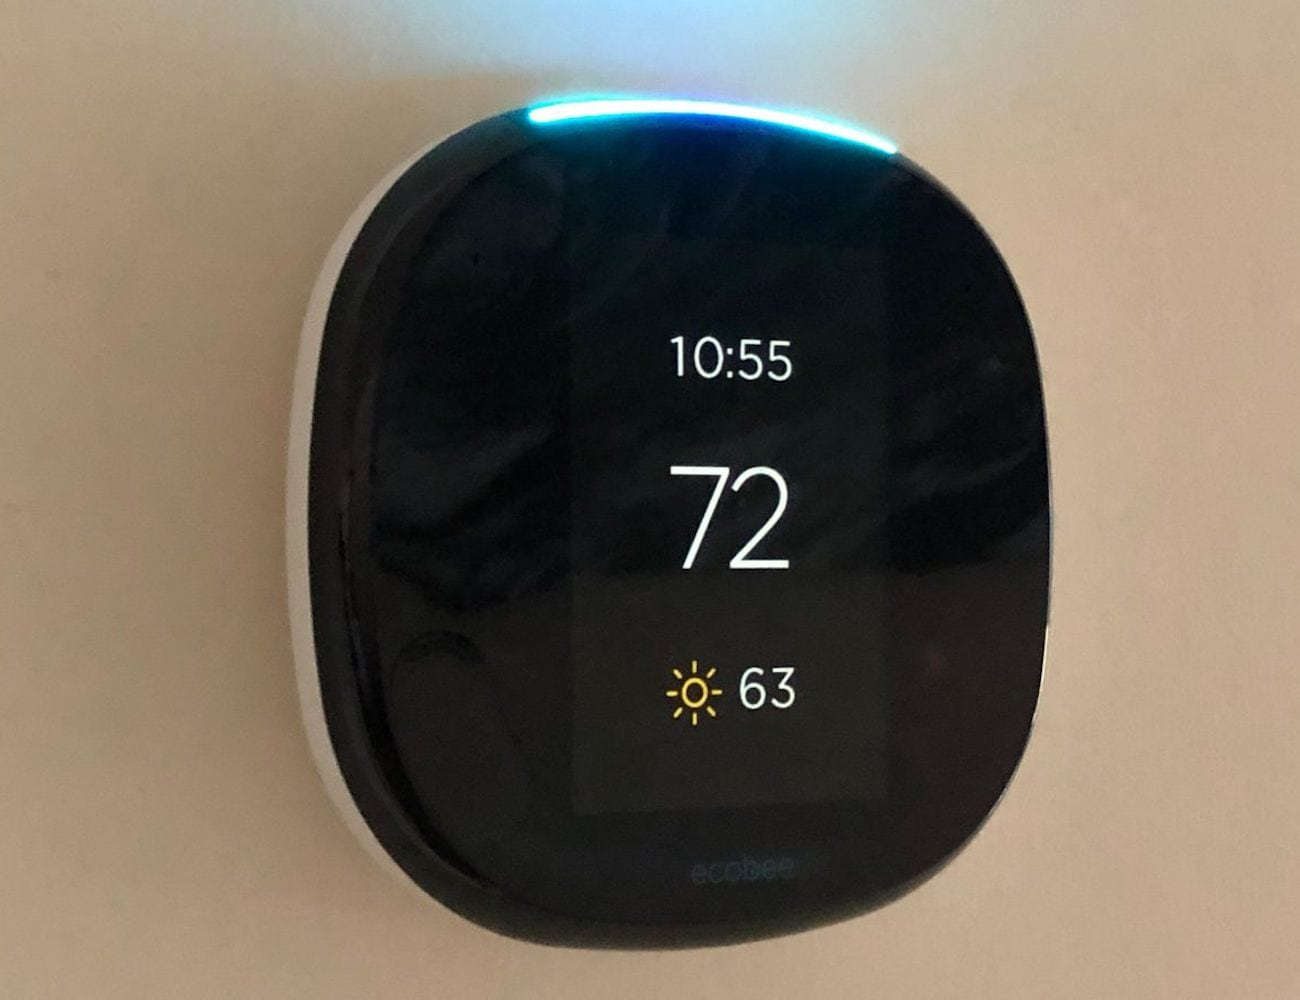 ecobee4 Room-Sensing Alexa Thermostat does way more than set the temperature